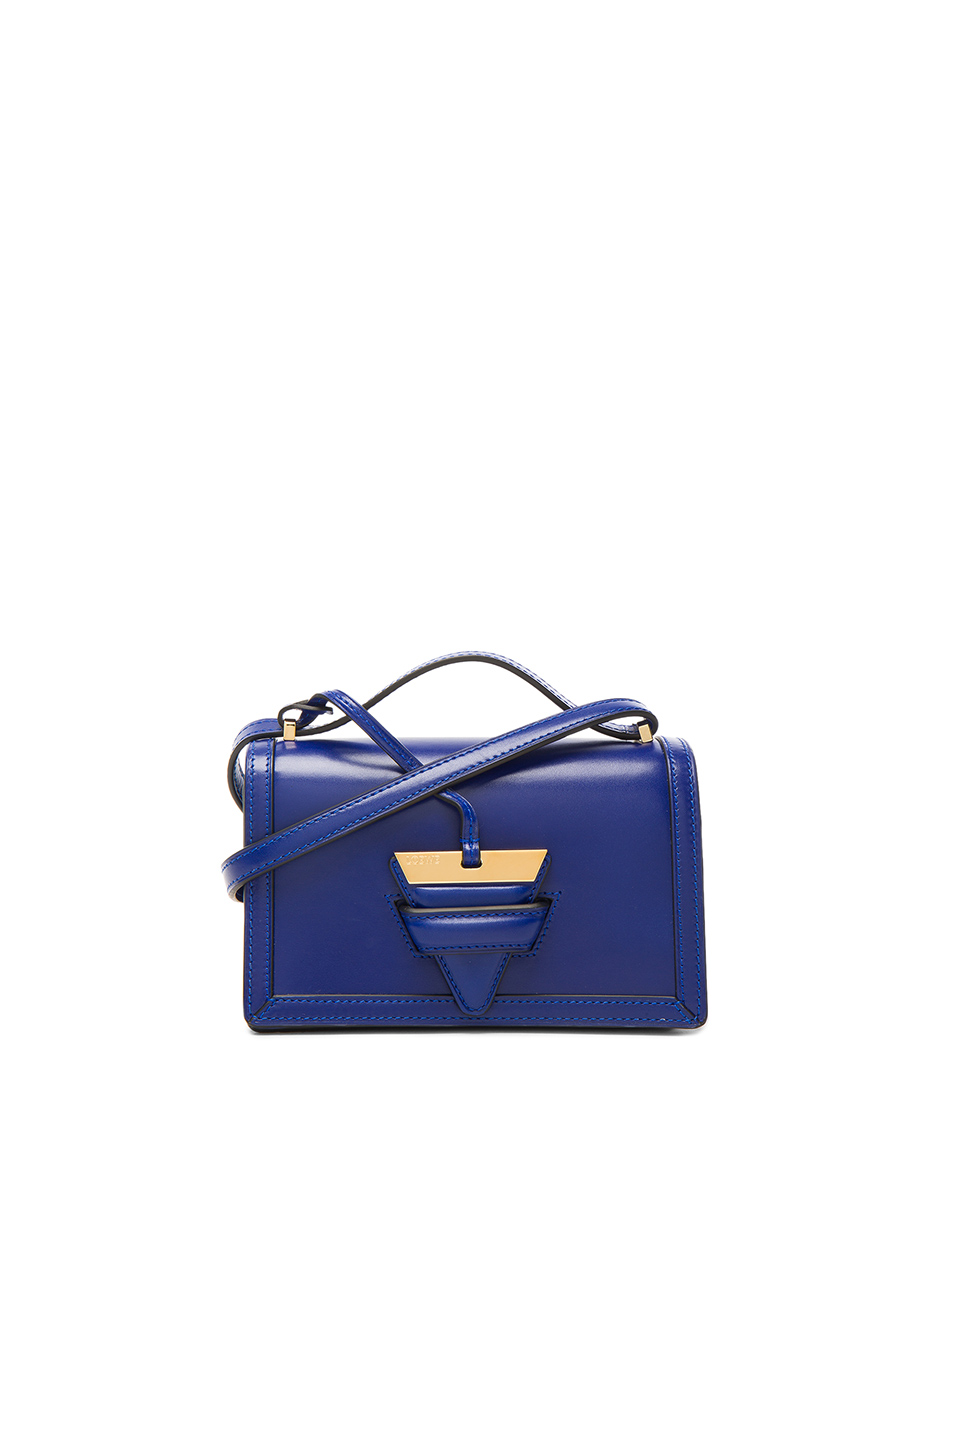 Loewe Barcelona Shoulder Bag - Blue